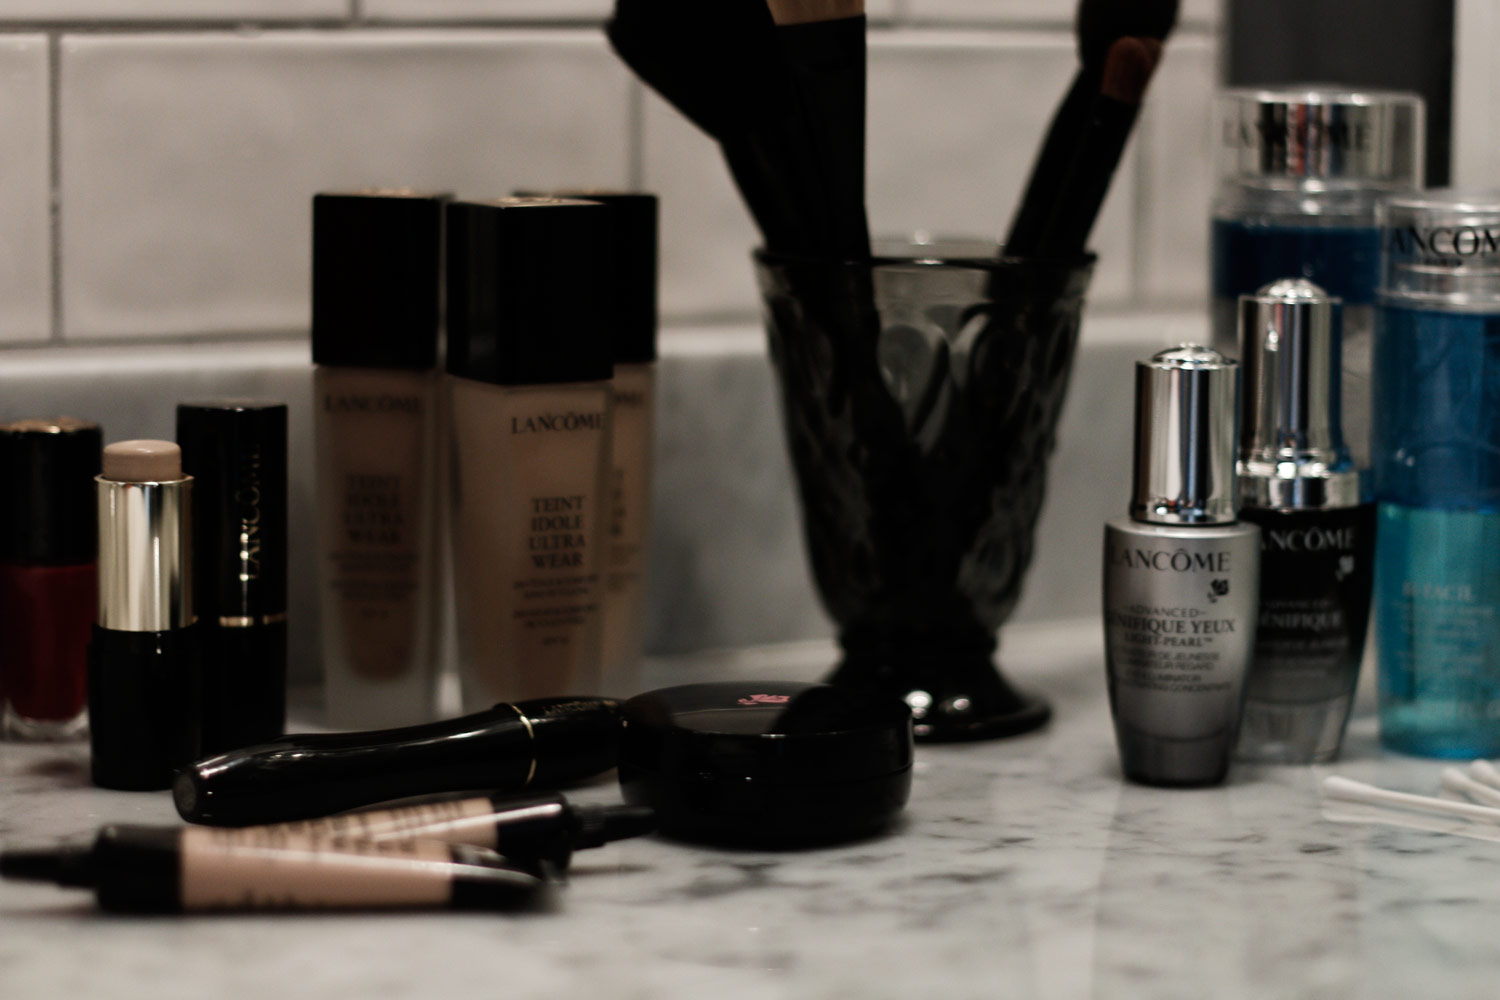 Lancome Teint Idole Ultra Wear Foundation - LES FACTORY FEMMES